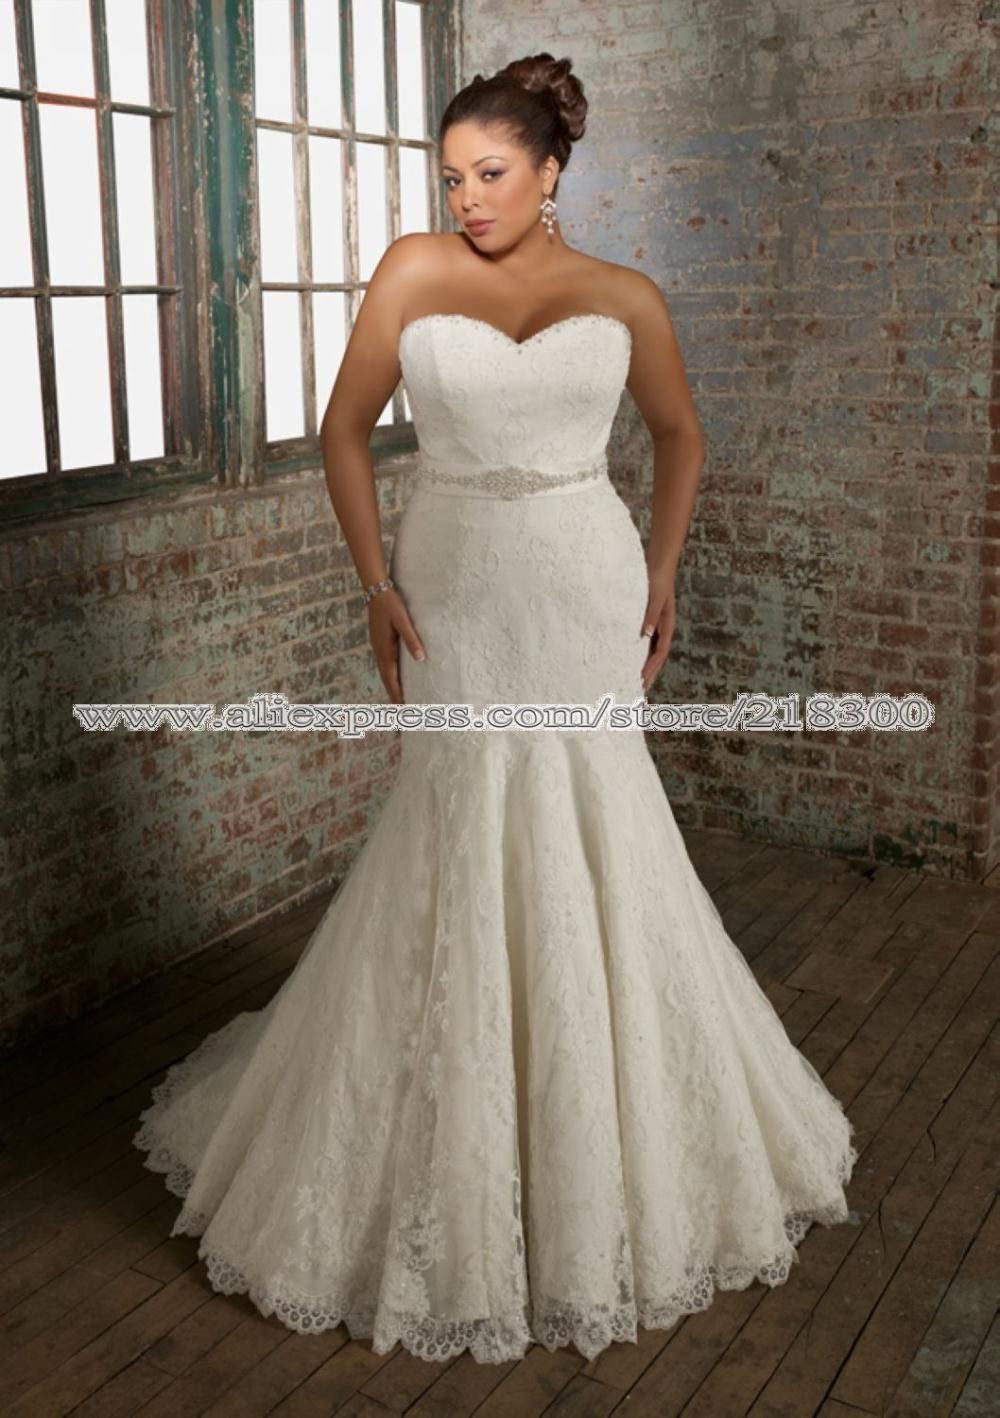 Womens wedding dresses for full figured women mermaid lace womens wedding dresses for full figured women mermaid lace plus size wedding ombrellifo Images